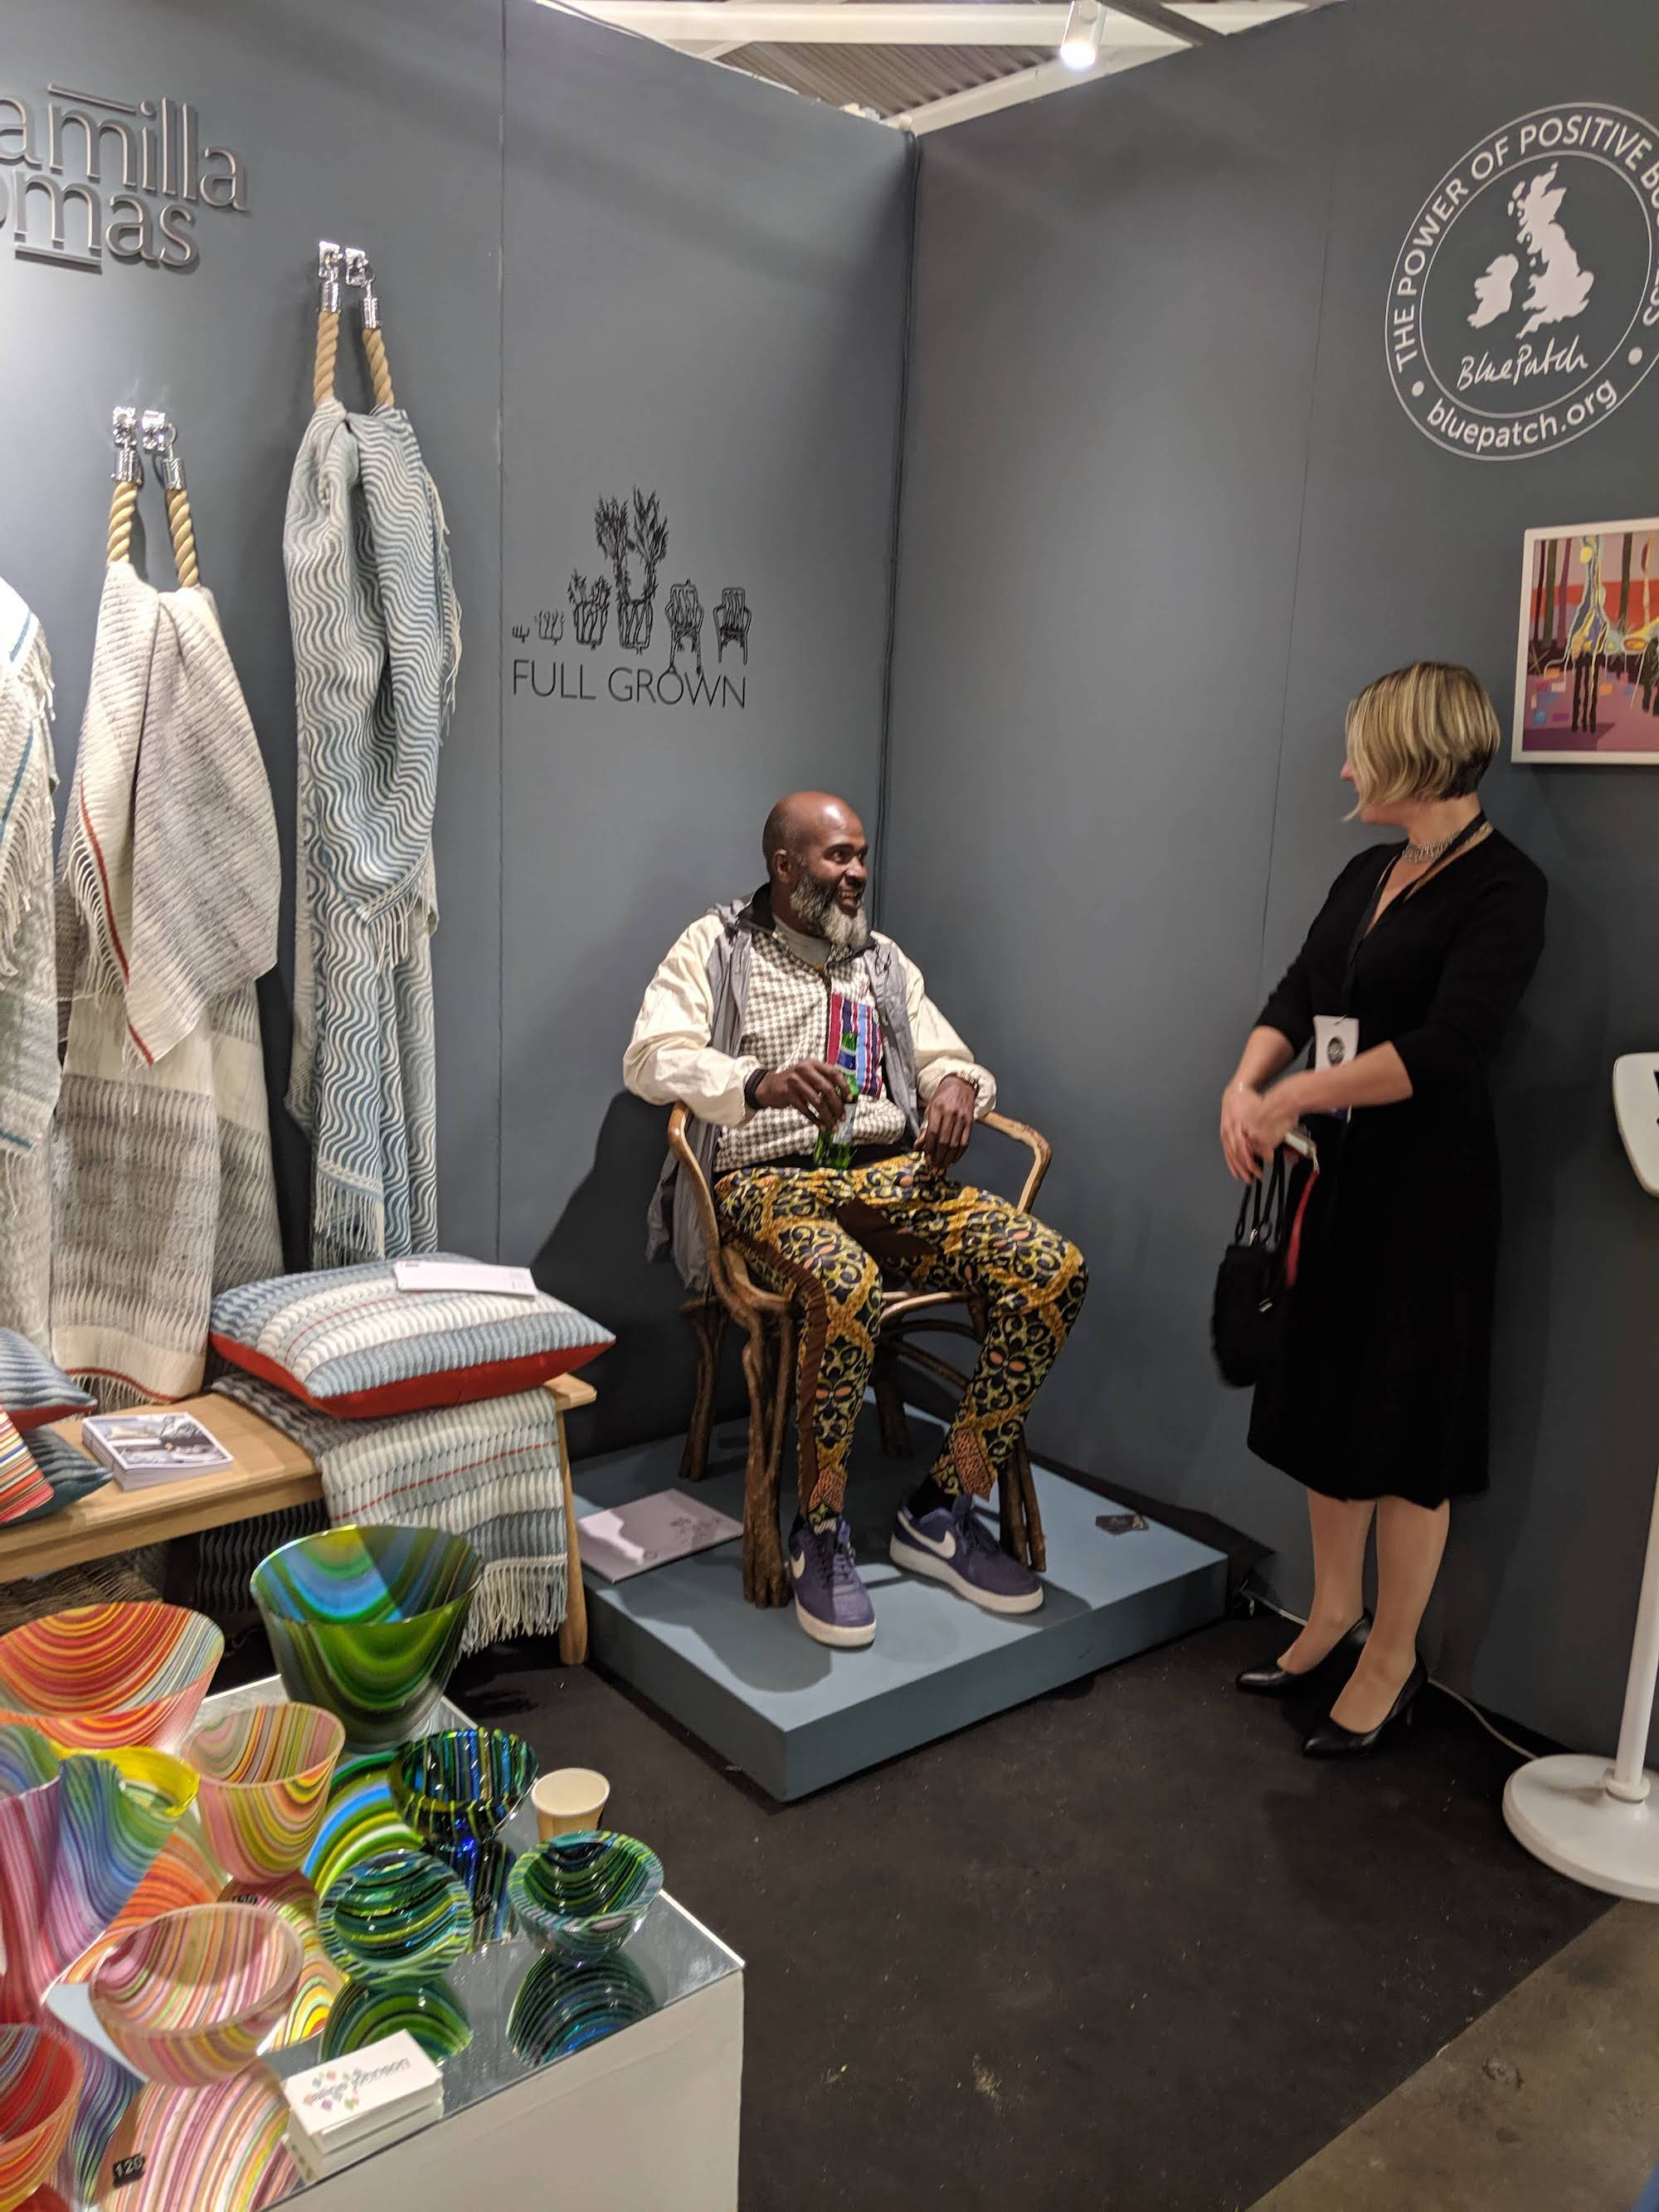 Man sitting down to try a home-grown chair by Full Grown, with colourful glass and blankets in the foreground, at London Design Fair.